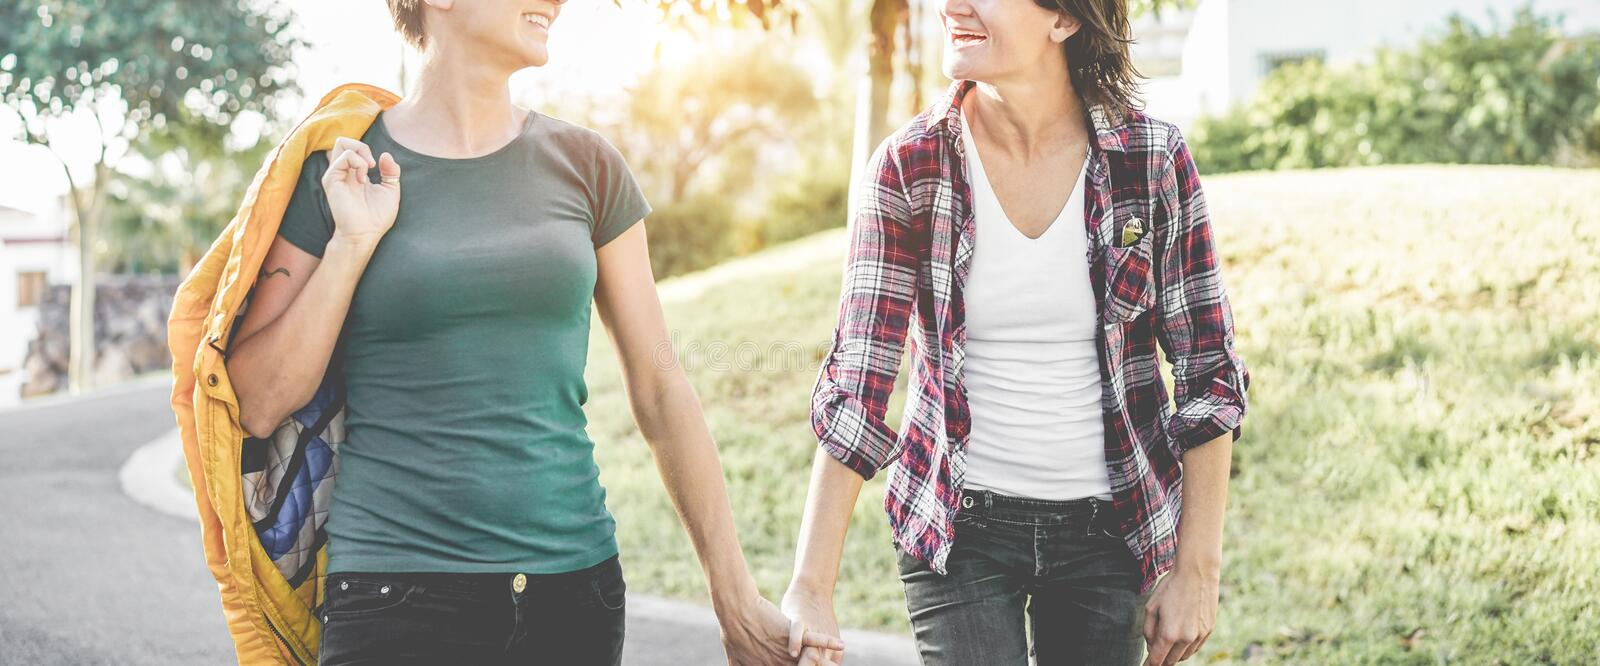 Happy gay couple having fun together outdoor - Young women joking and playing together - Equality right, love, homosexuality royalty free stock photography